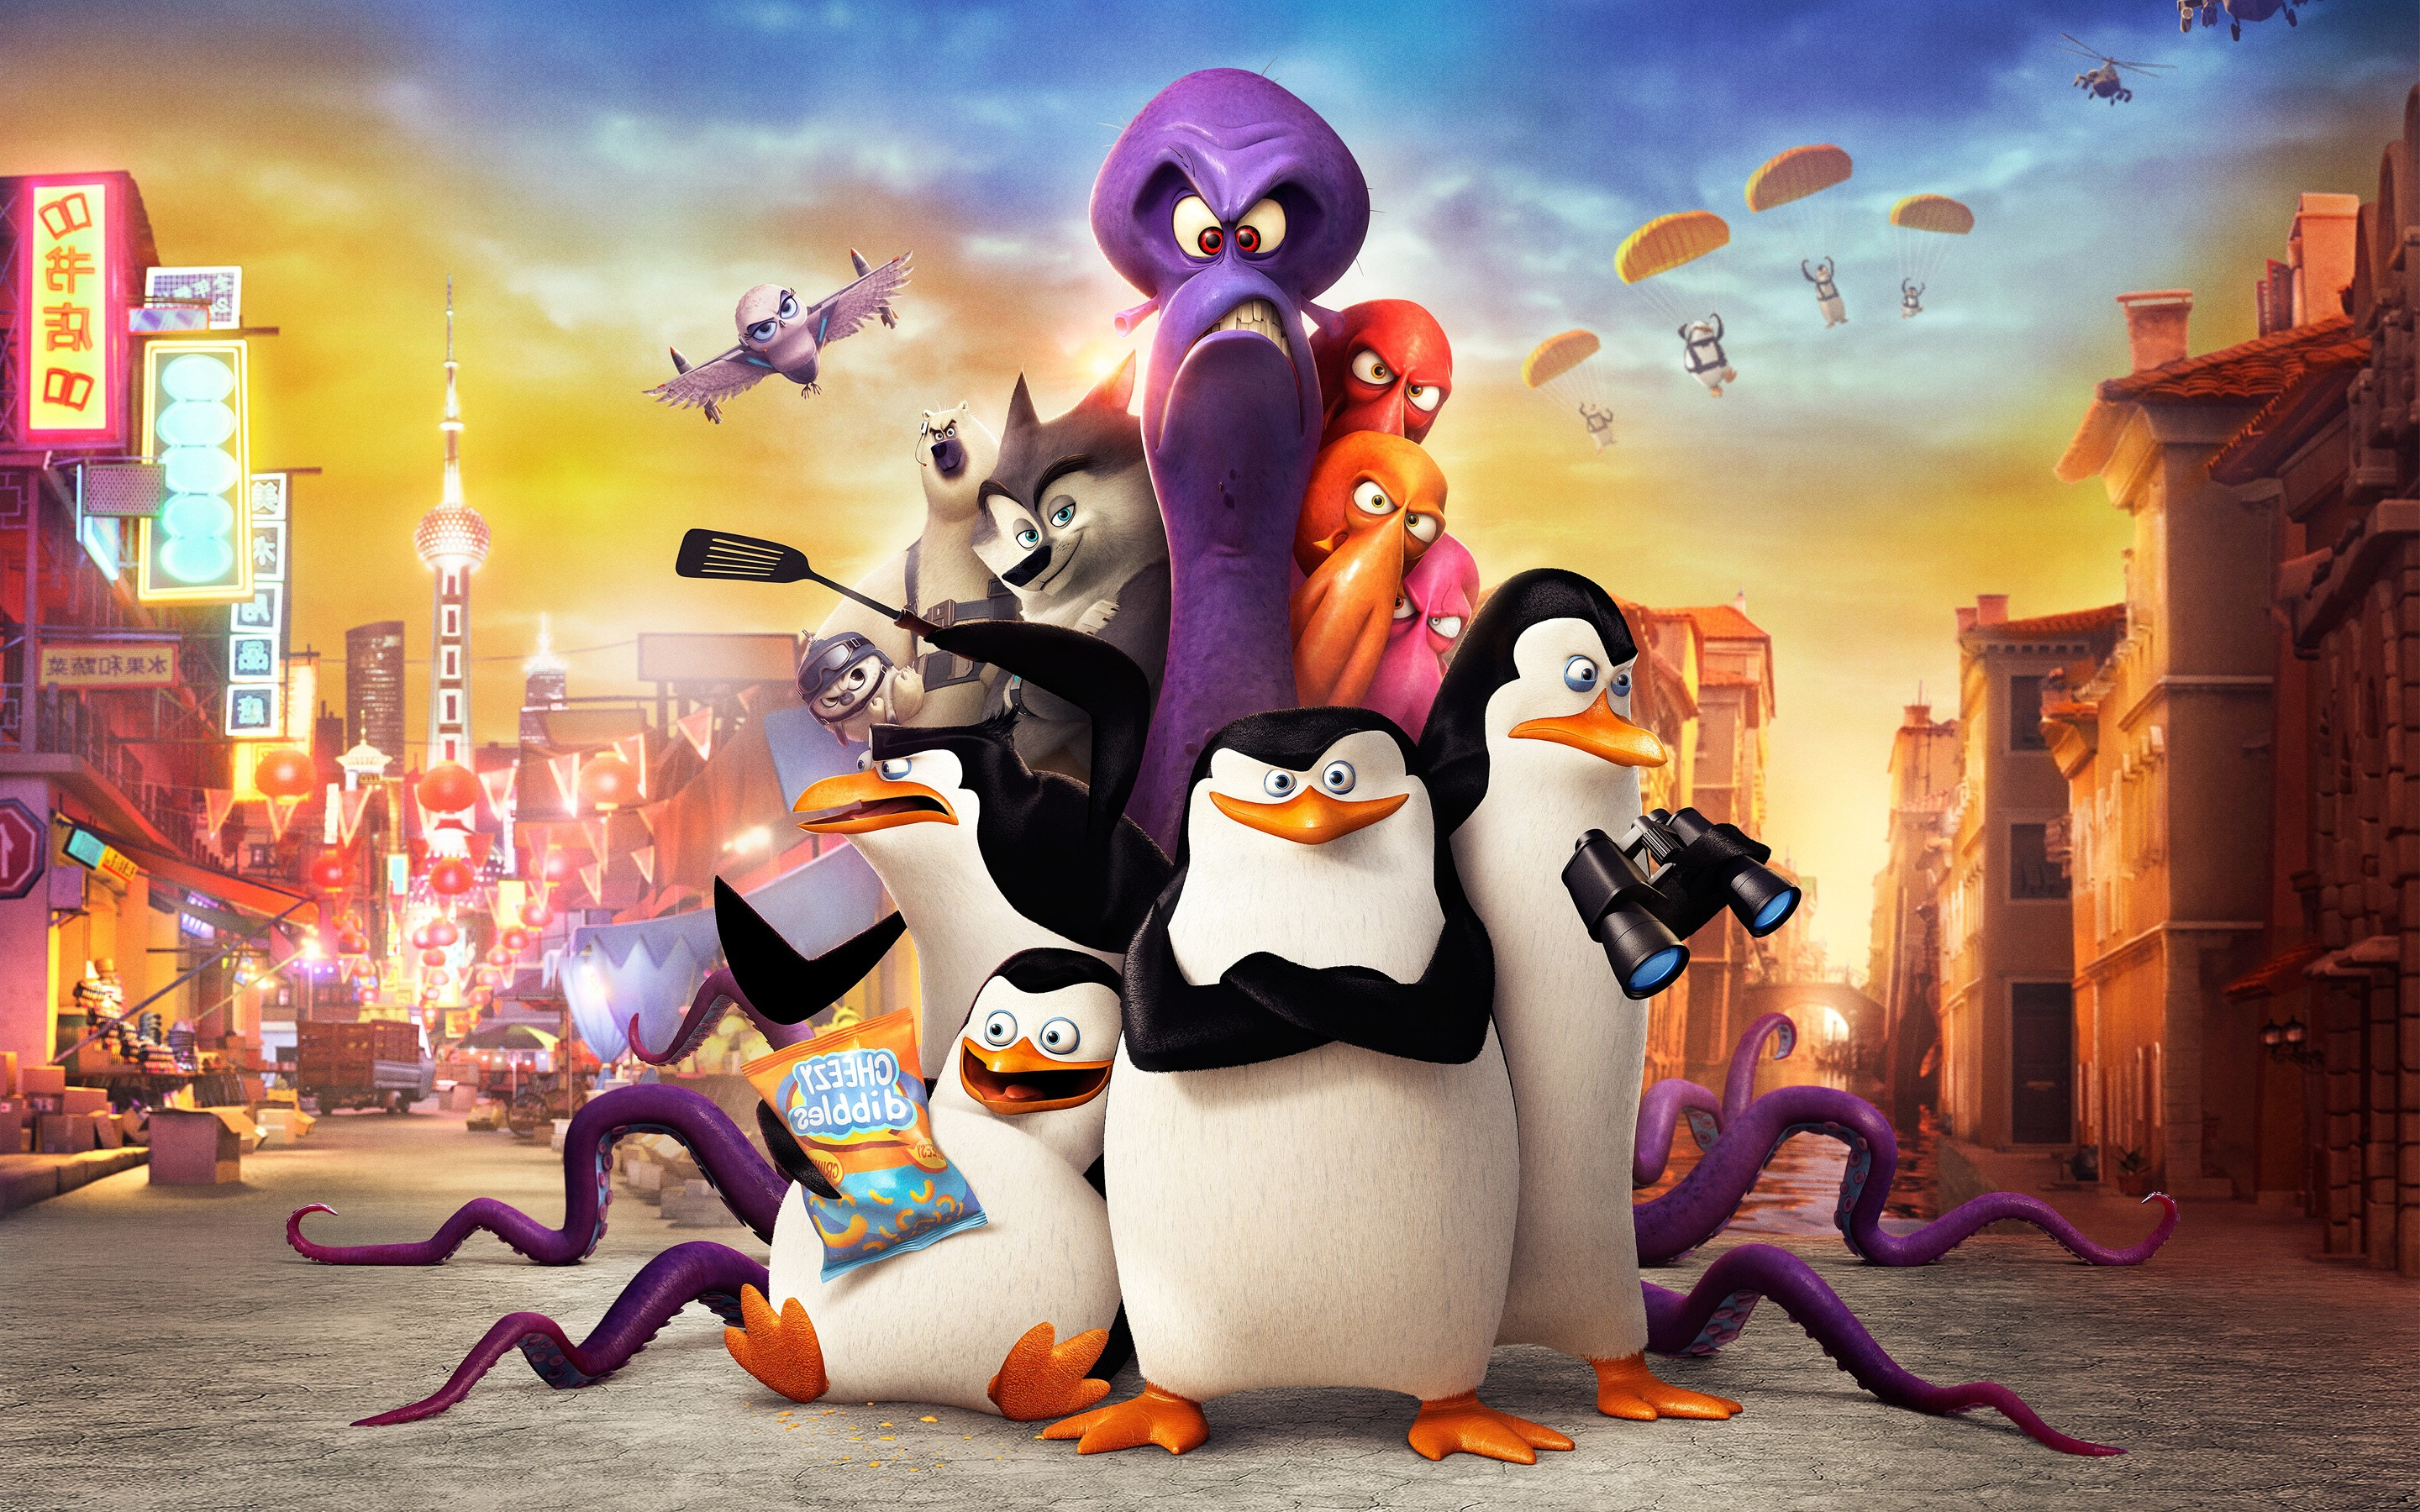 penguins of madagascar movie hd movies 4k wallpapers